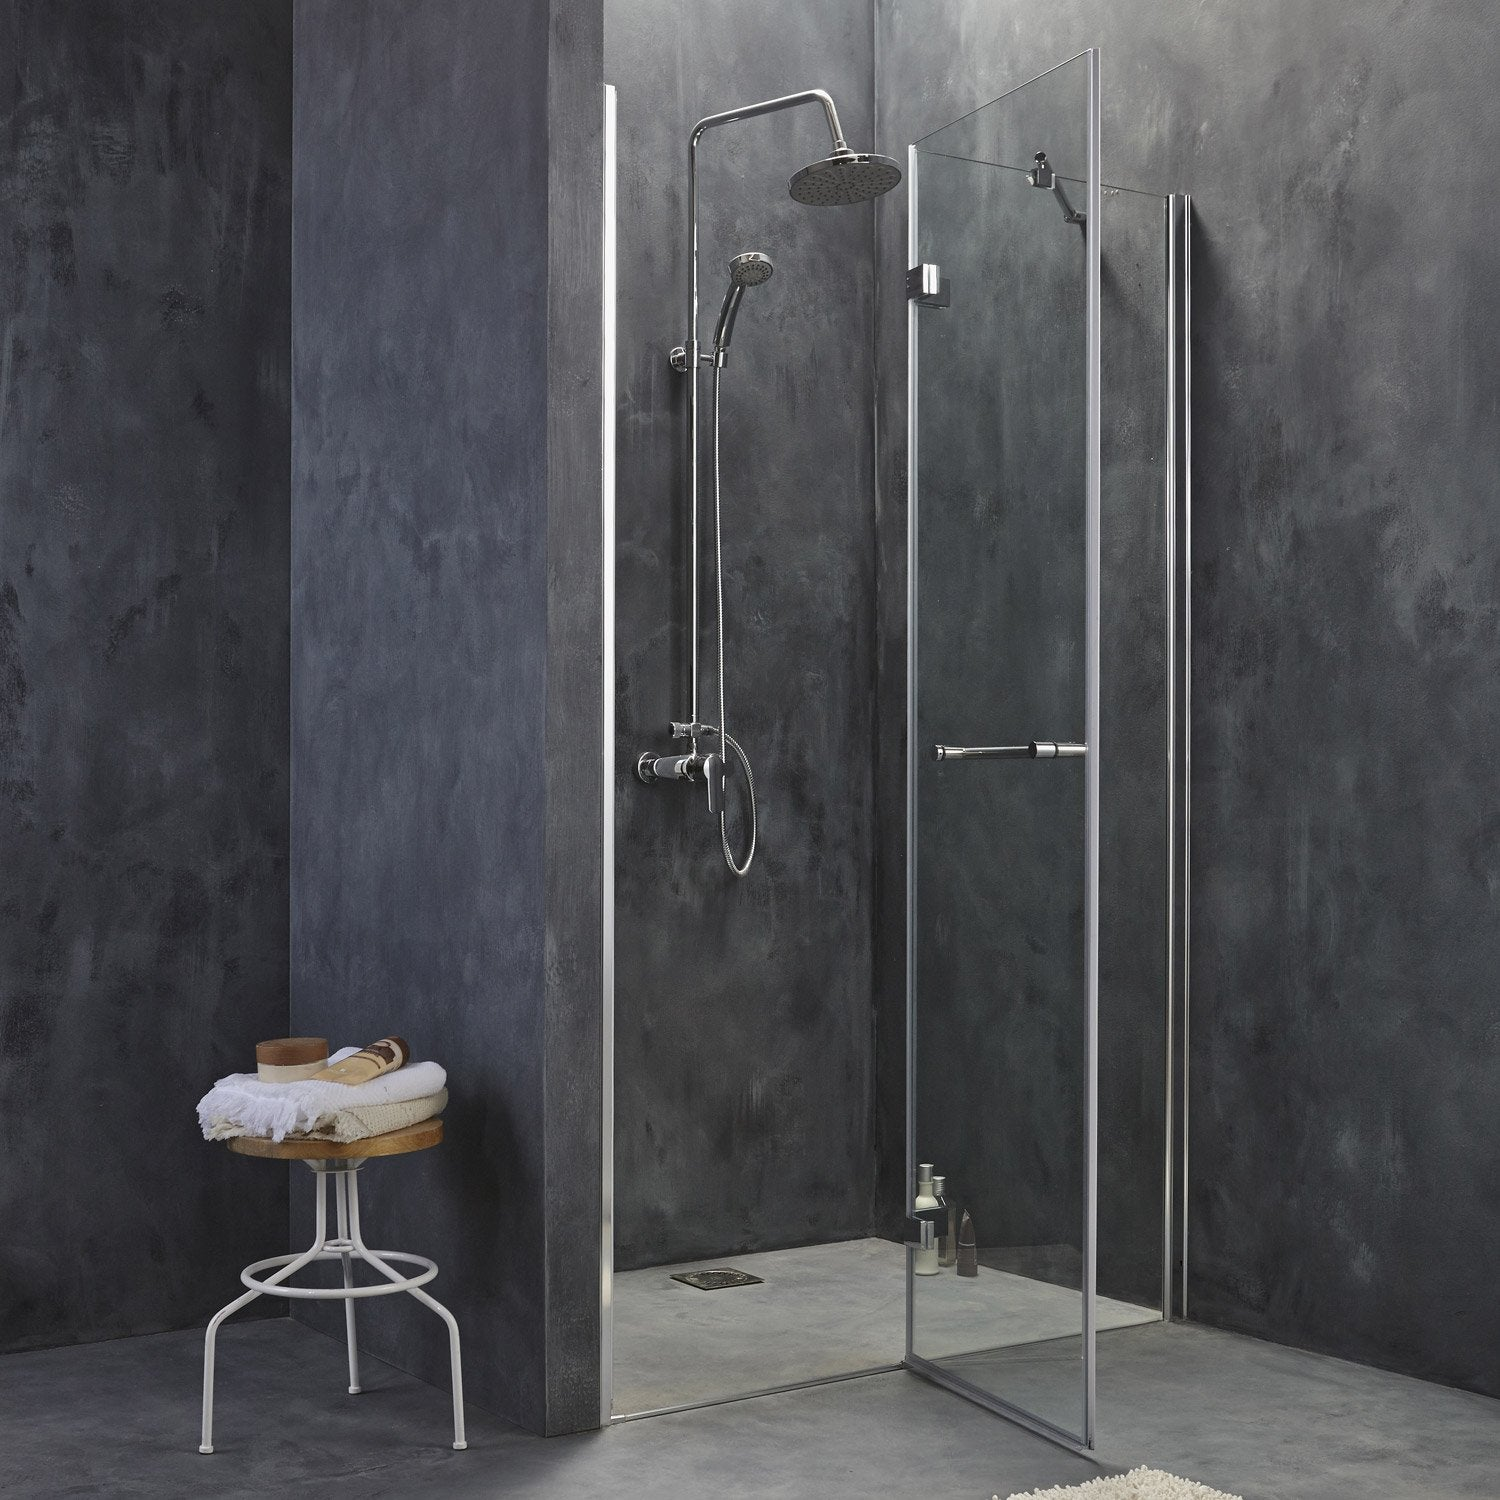 porte de douche pivotante pas cher avec leroy merlin brico depot. Black Bedroom Furniture Sets. Home Design Ideas